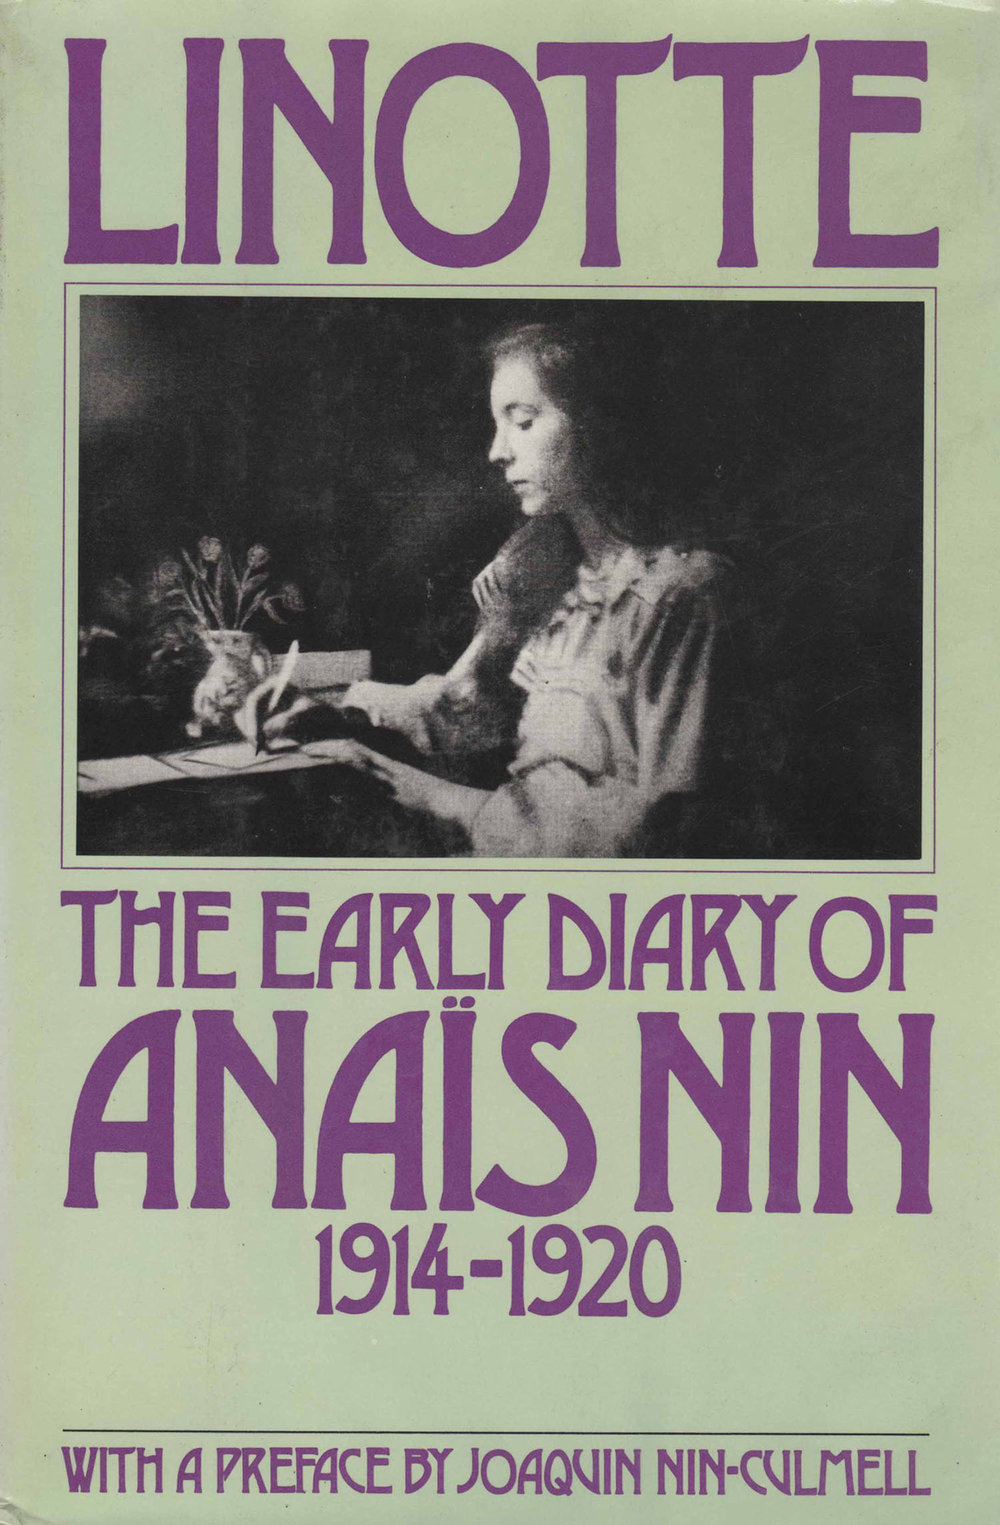 Linotte: The Early Diary of Anais Nin